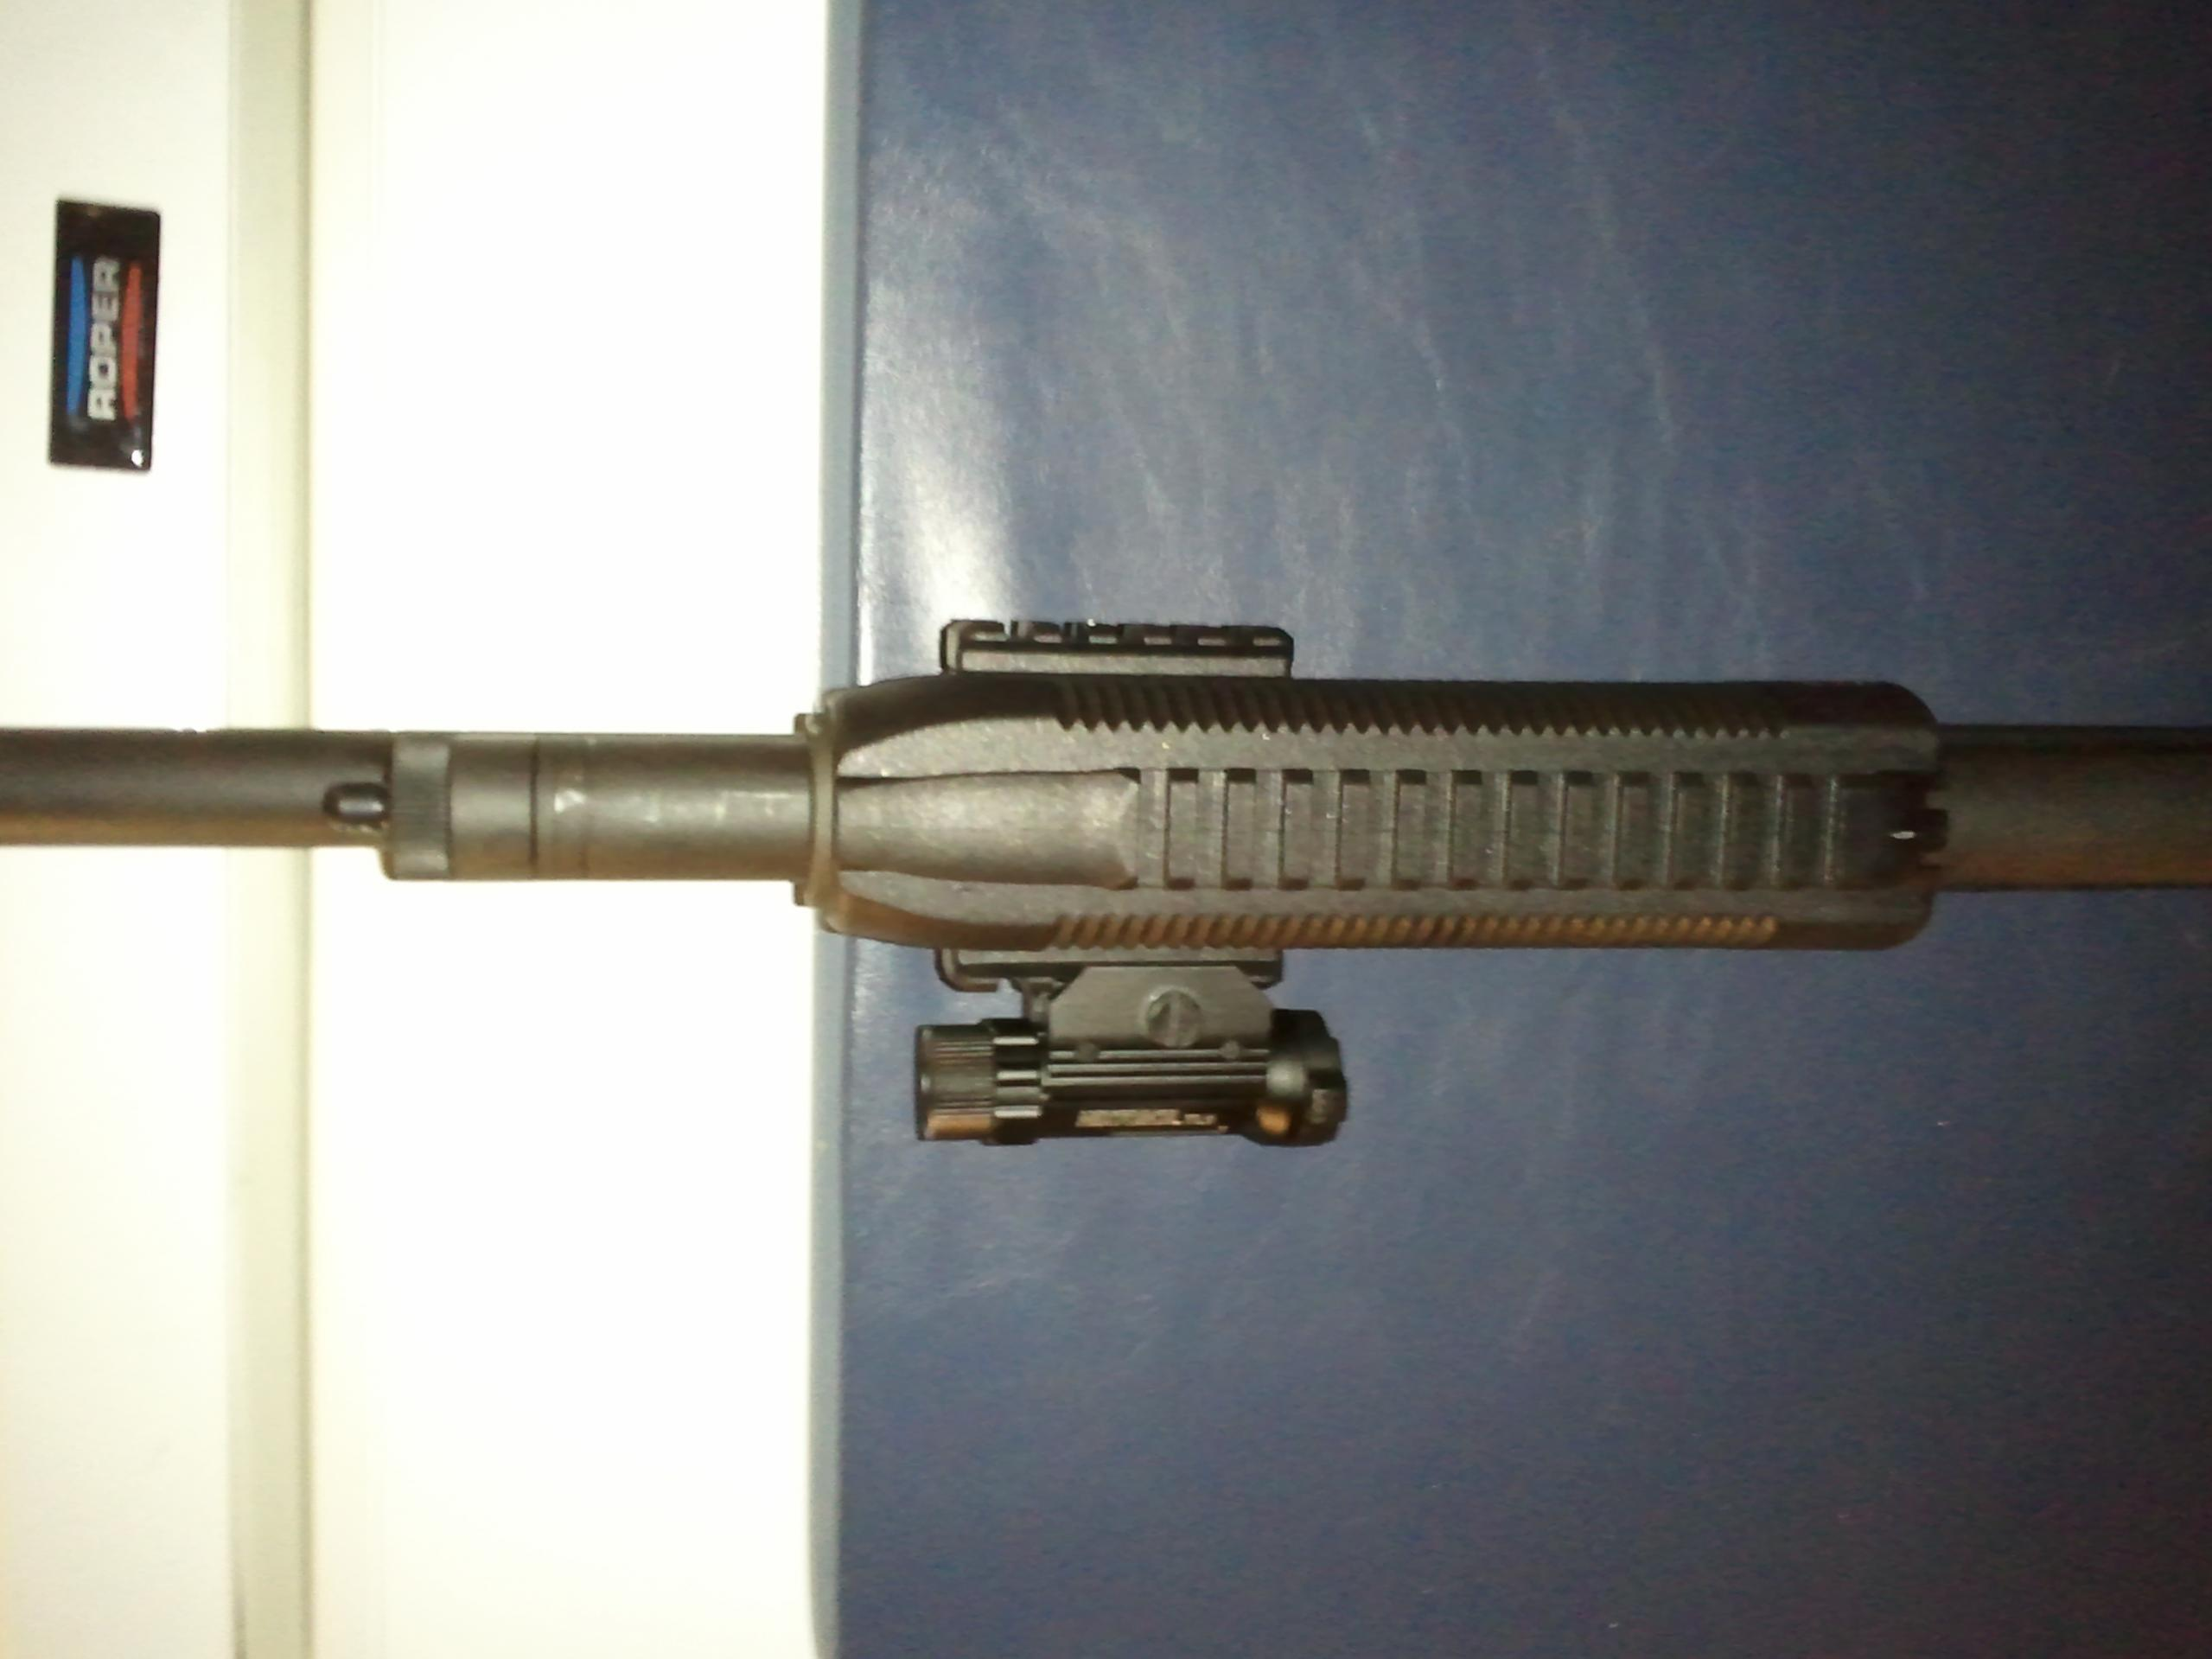 Adding picatinny rail to a stock Mossberg foregrip. Help!-2011-12-15_16.42.36.jpg